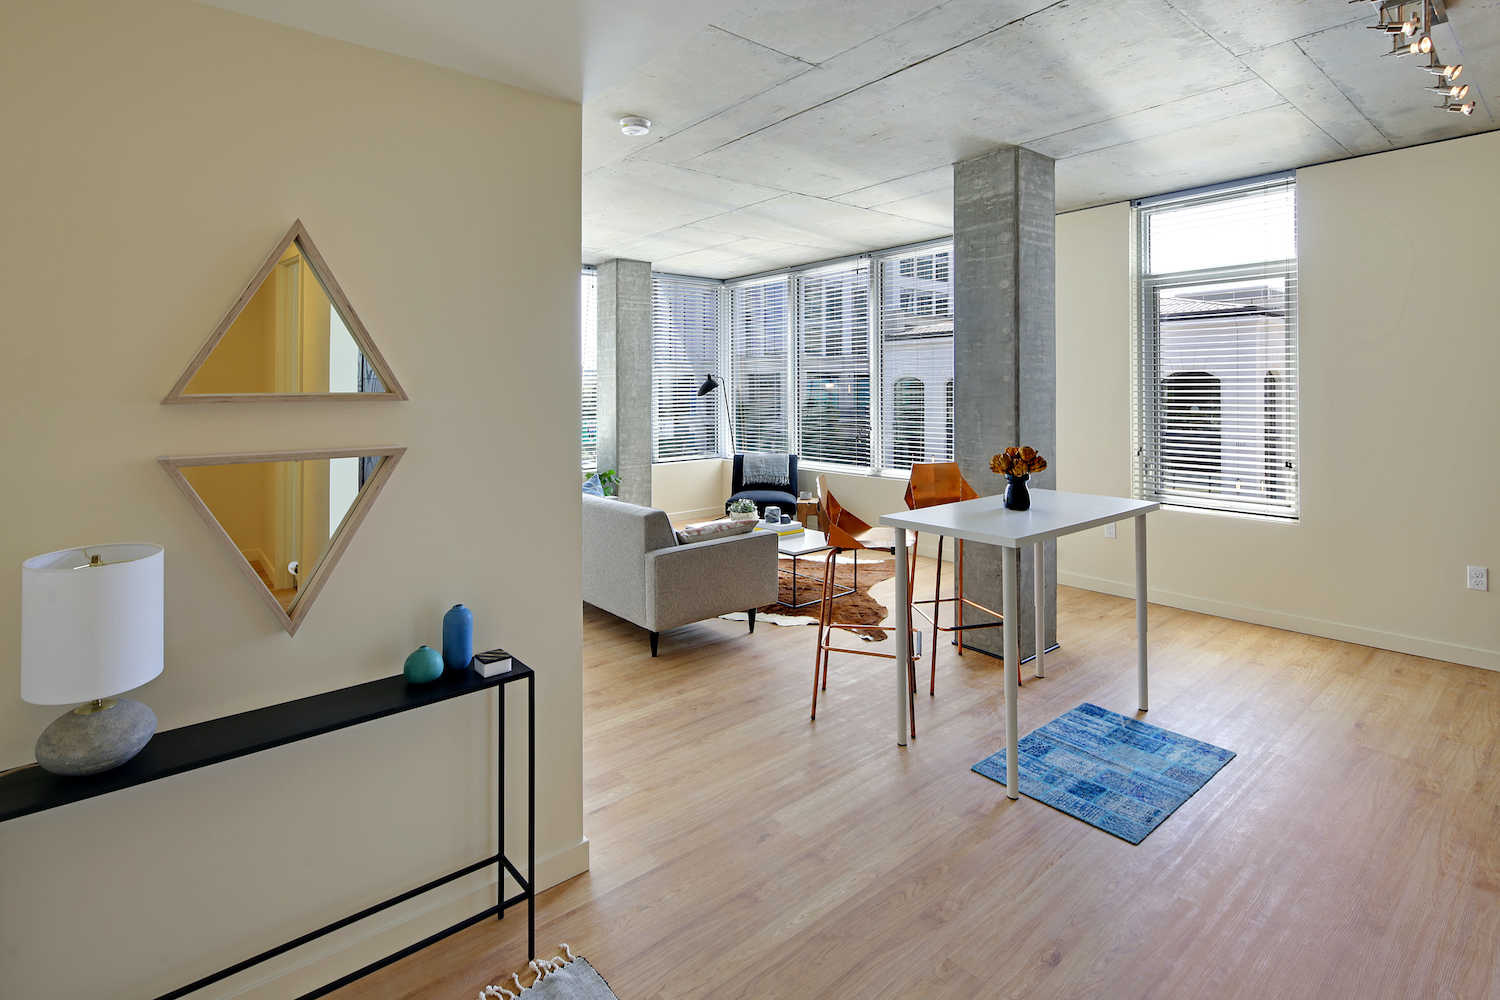 Open floor plan - plank style flooring and bright city views